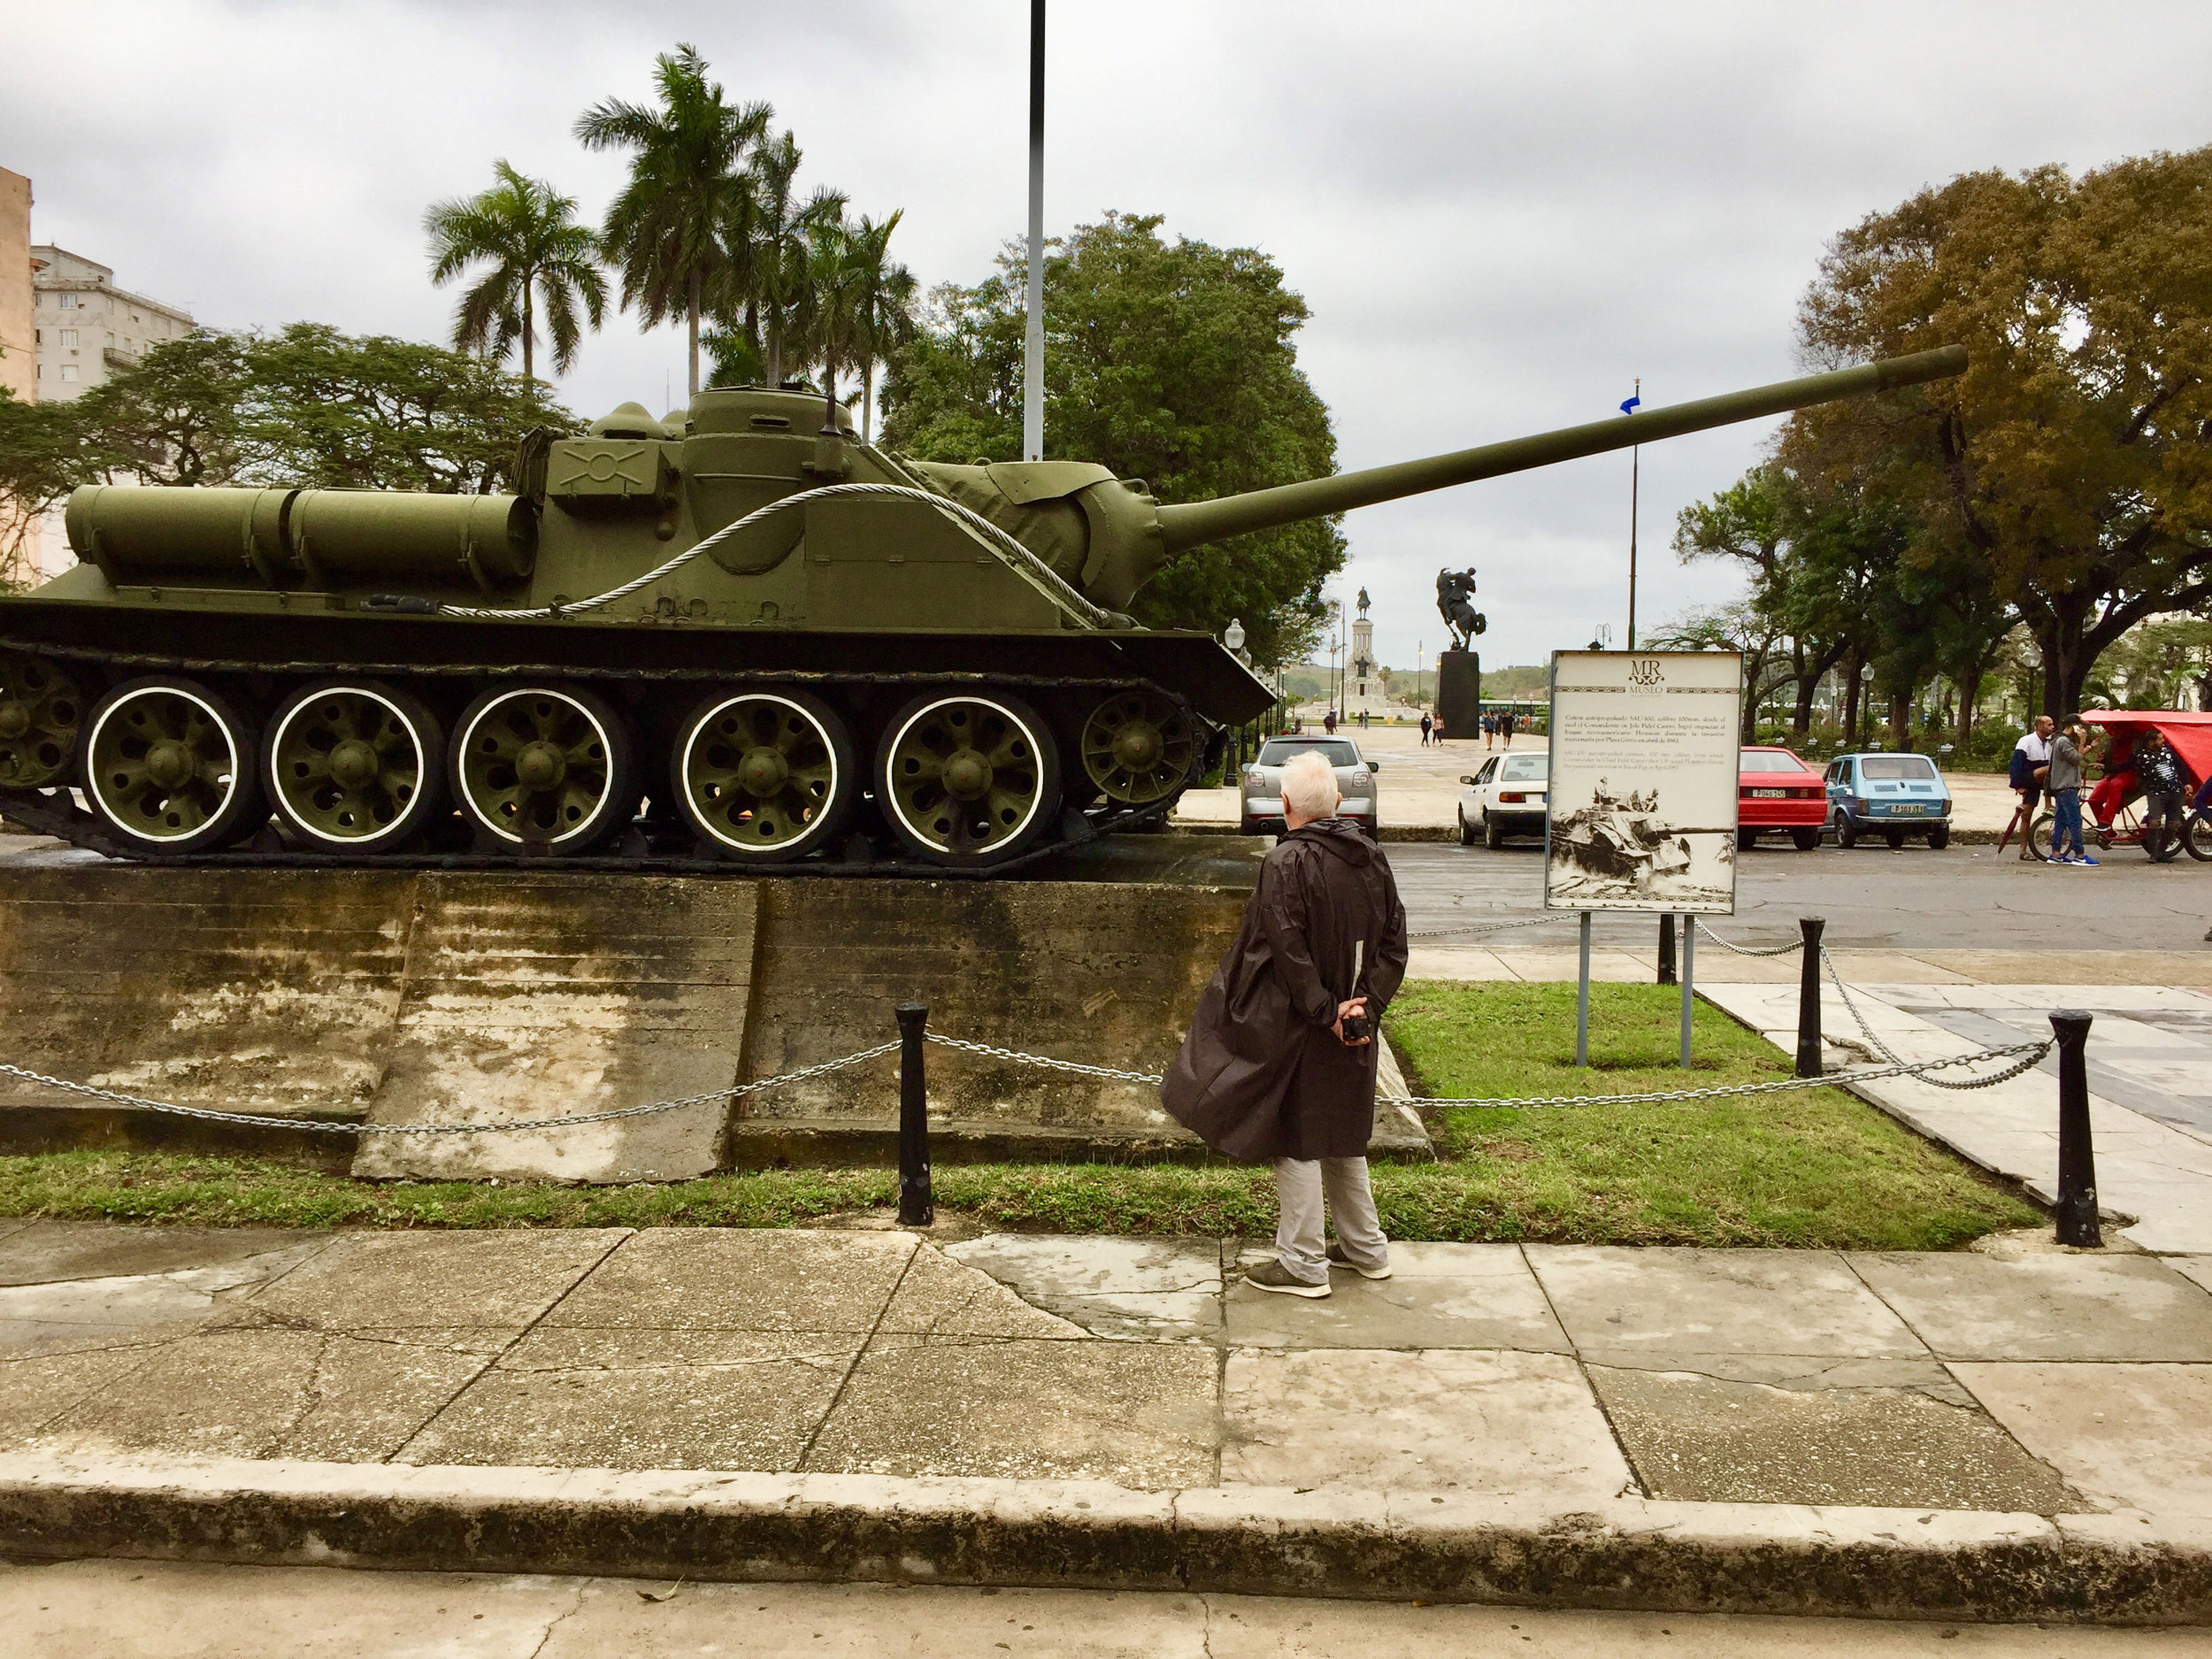 The tank outside the museum.